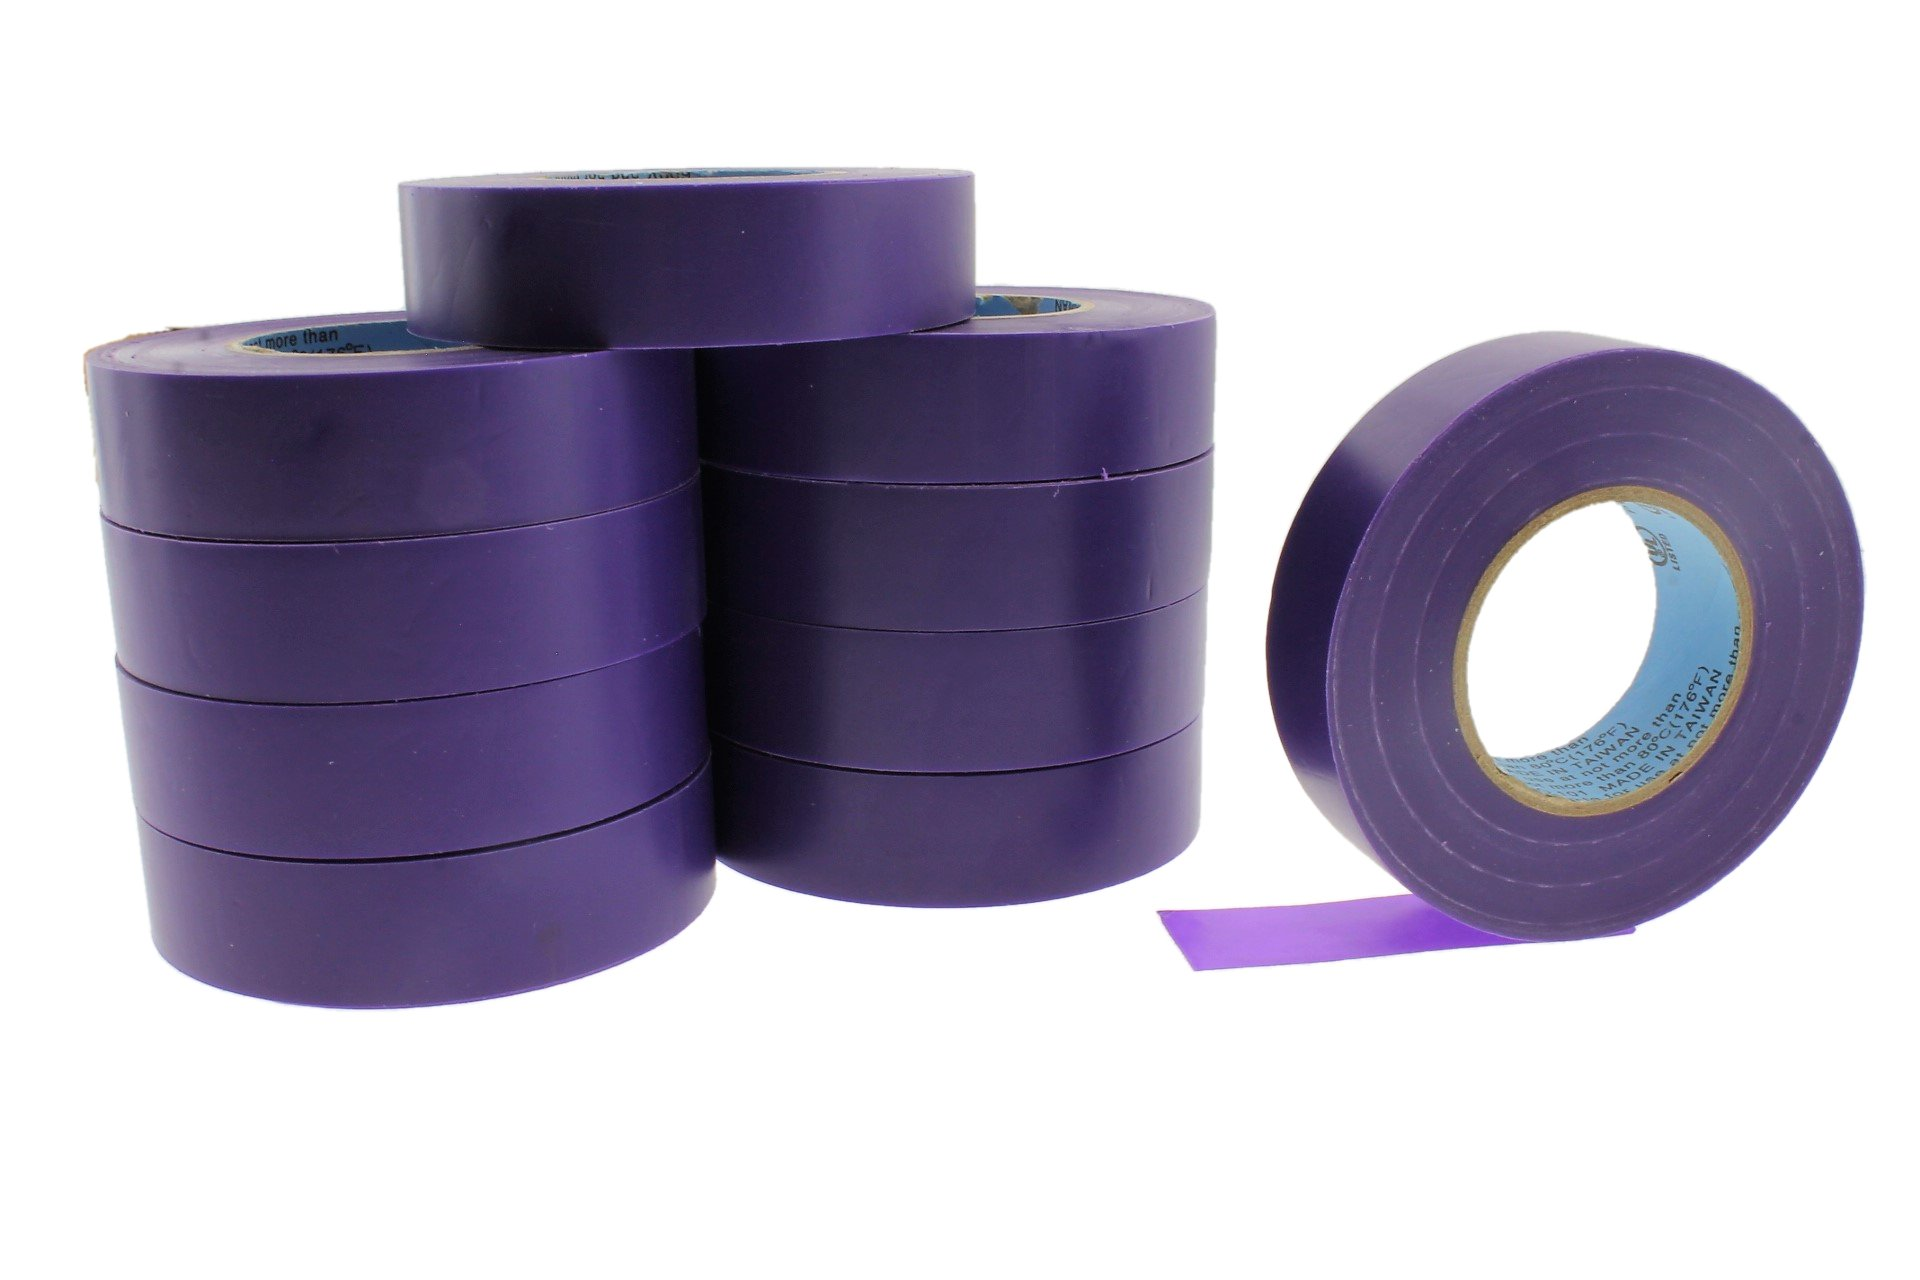 10pk 3/4'' PURPLE Electrical Tape Supreme Durable .75 Pro-Grade Wire harness PVC Vinyl Marking Labeling Coding Warning Safety Flame Retardant 60' 7 mil